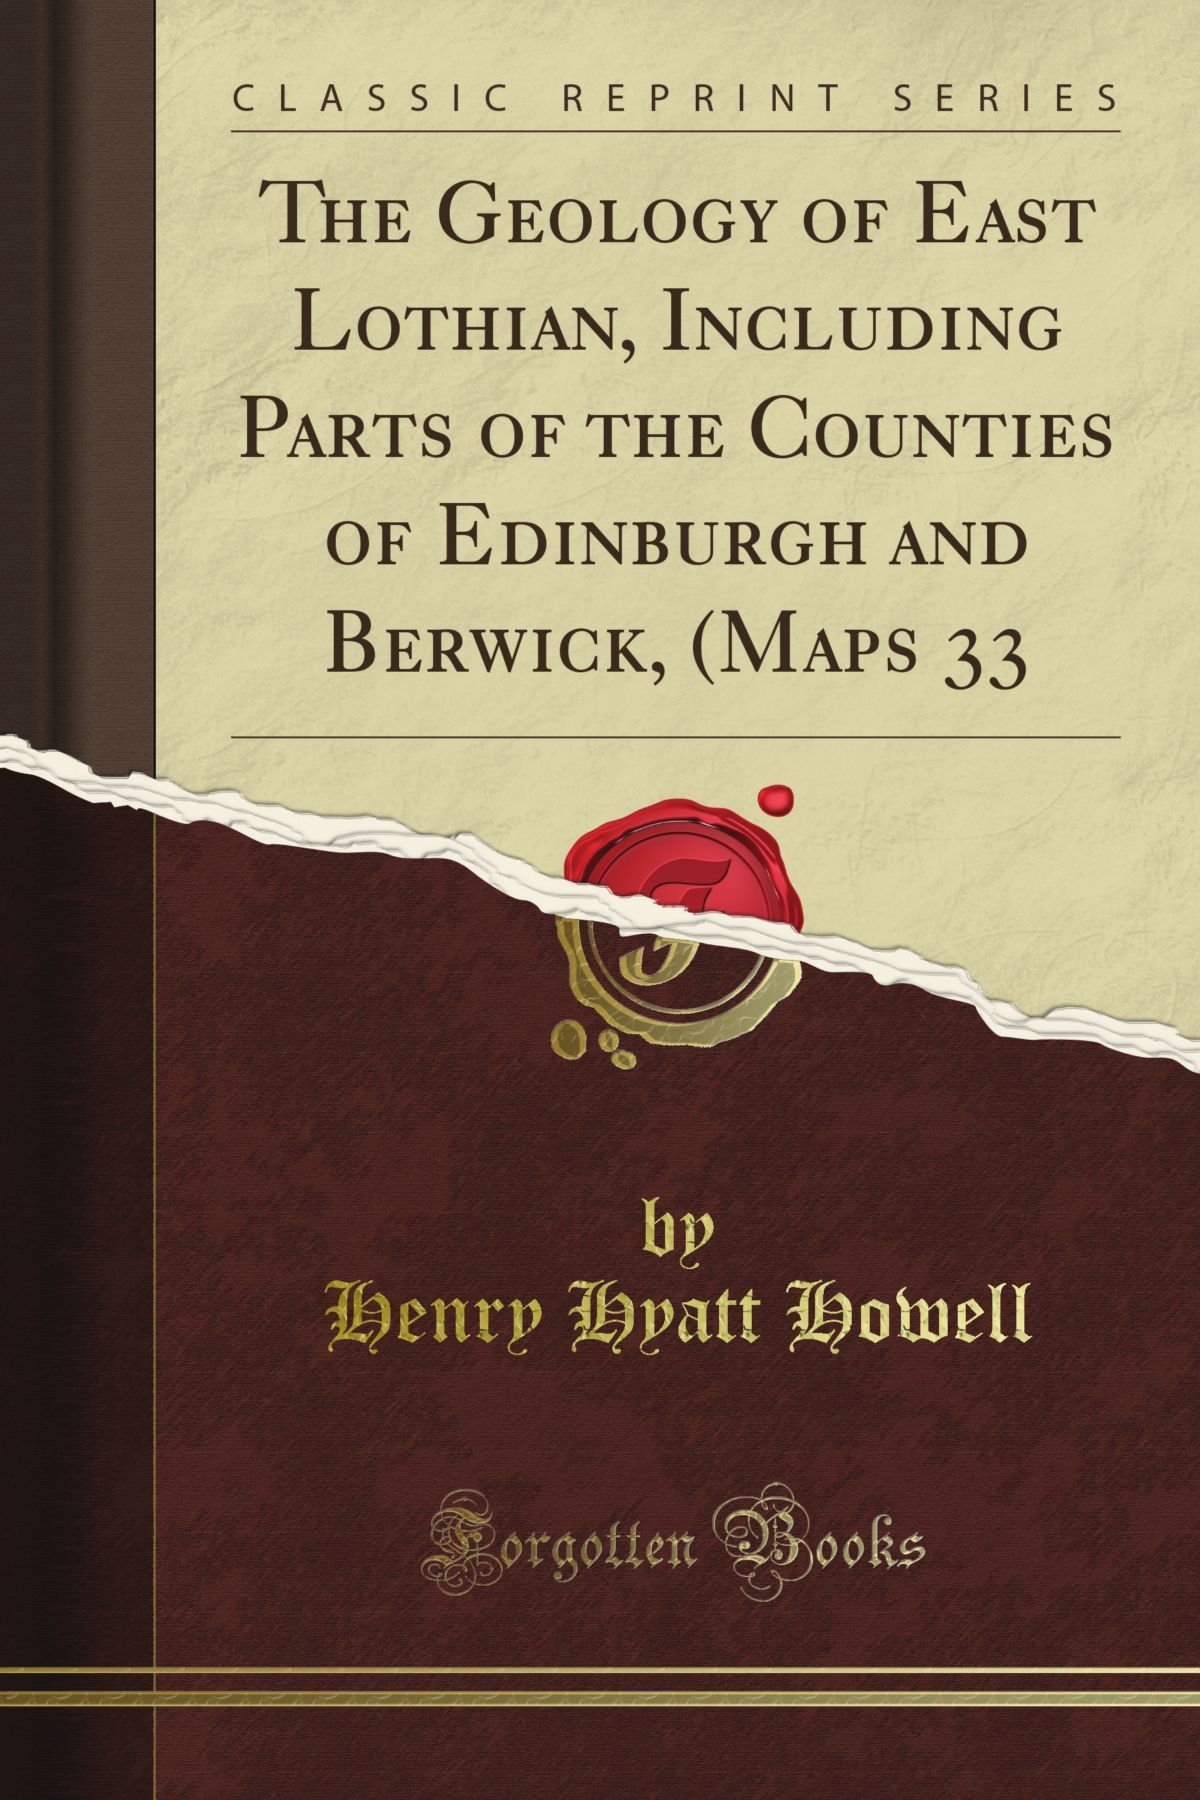 Download The Geology of East Lothian, Including Parts of the Counties of Edinburgh and Berwick, (Maps 33 (Classic Reprint) pdf